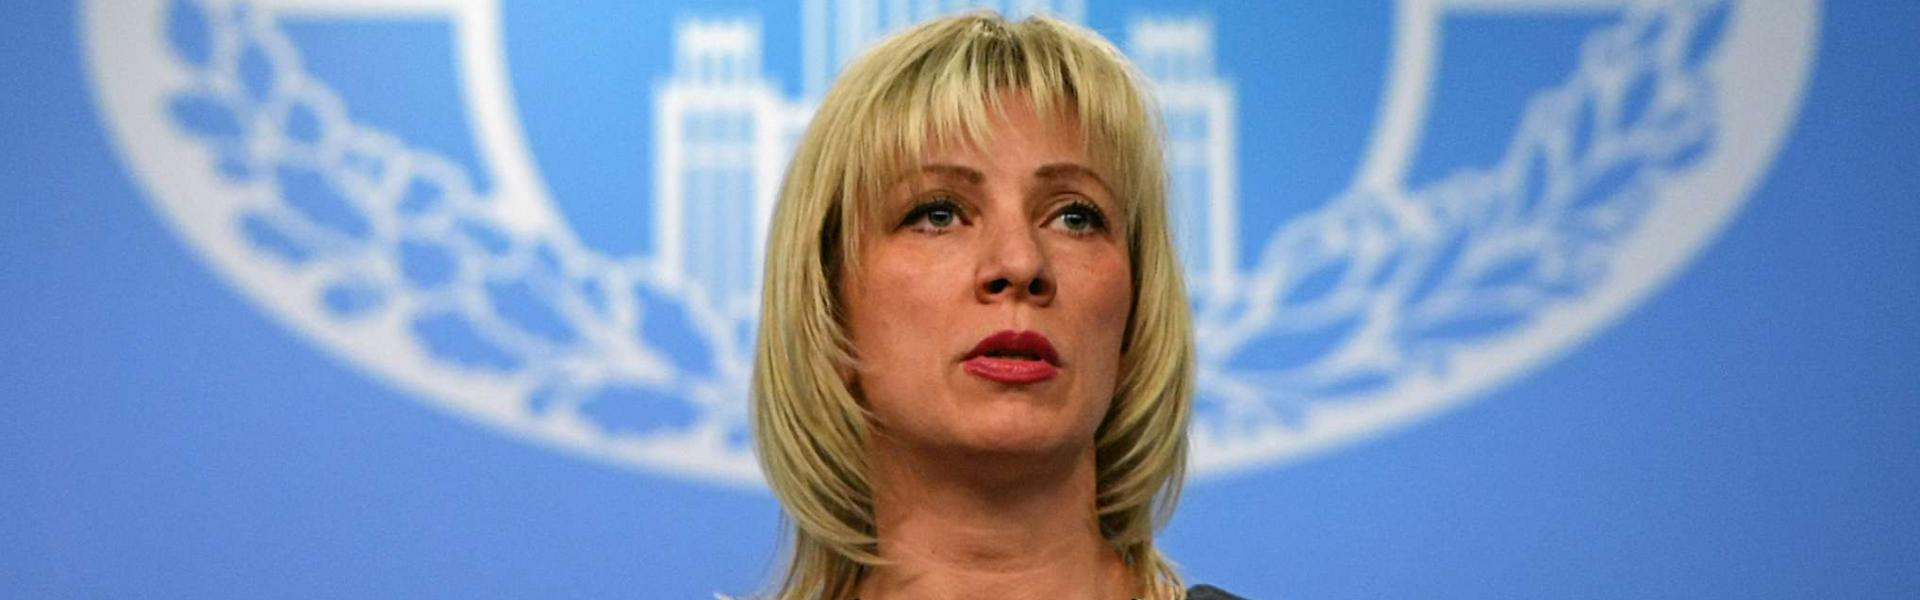 Russian Foreign Ministry spokeswoman Maria Zakharova speaks to the media in Moscow on March 29, 2018. (AFP)